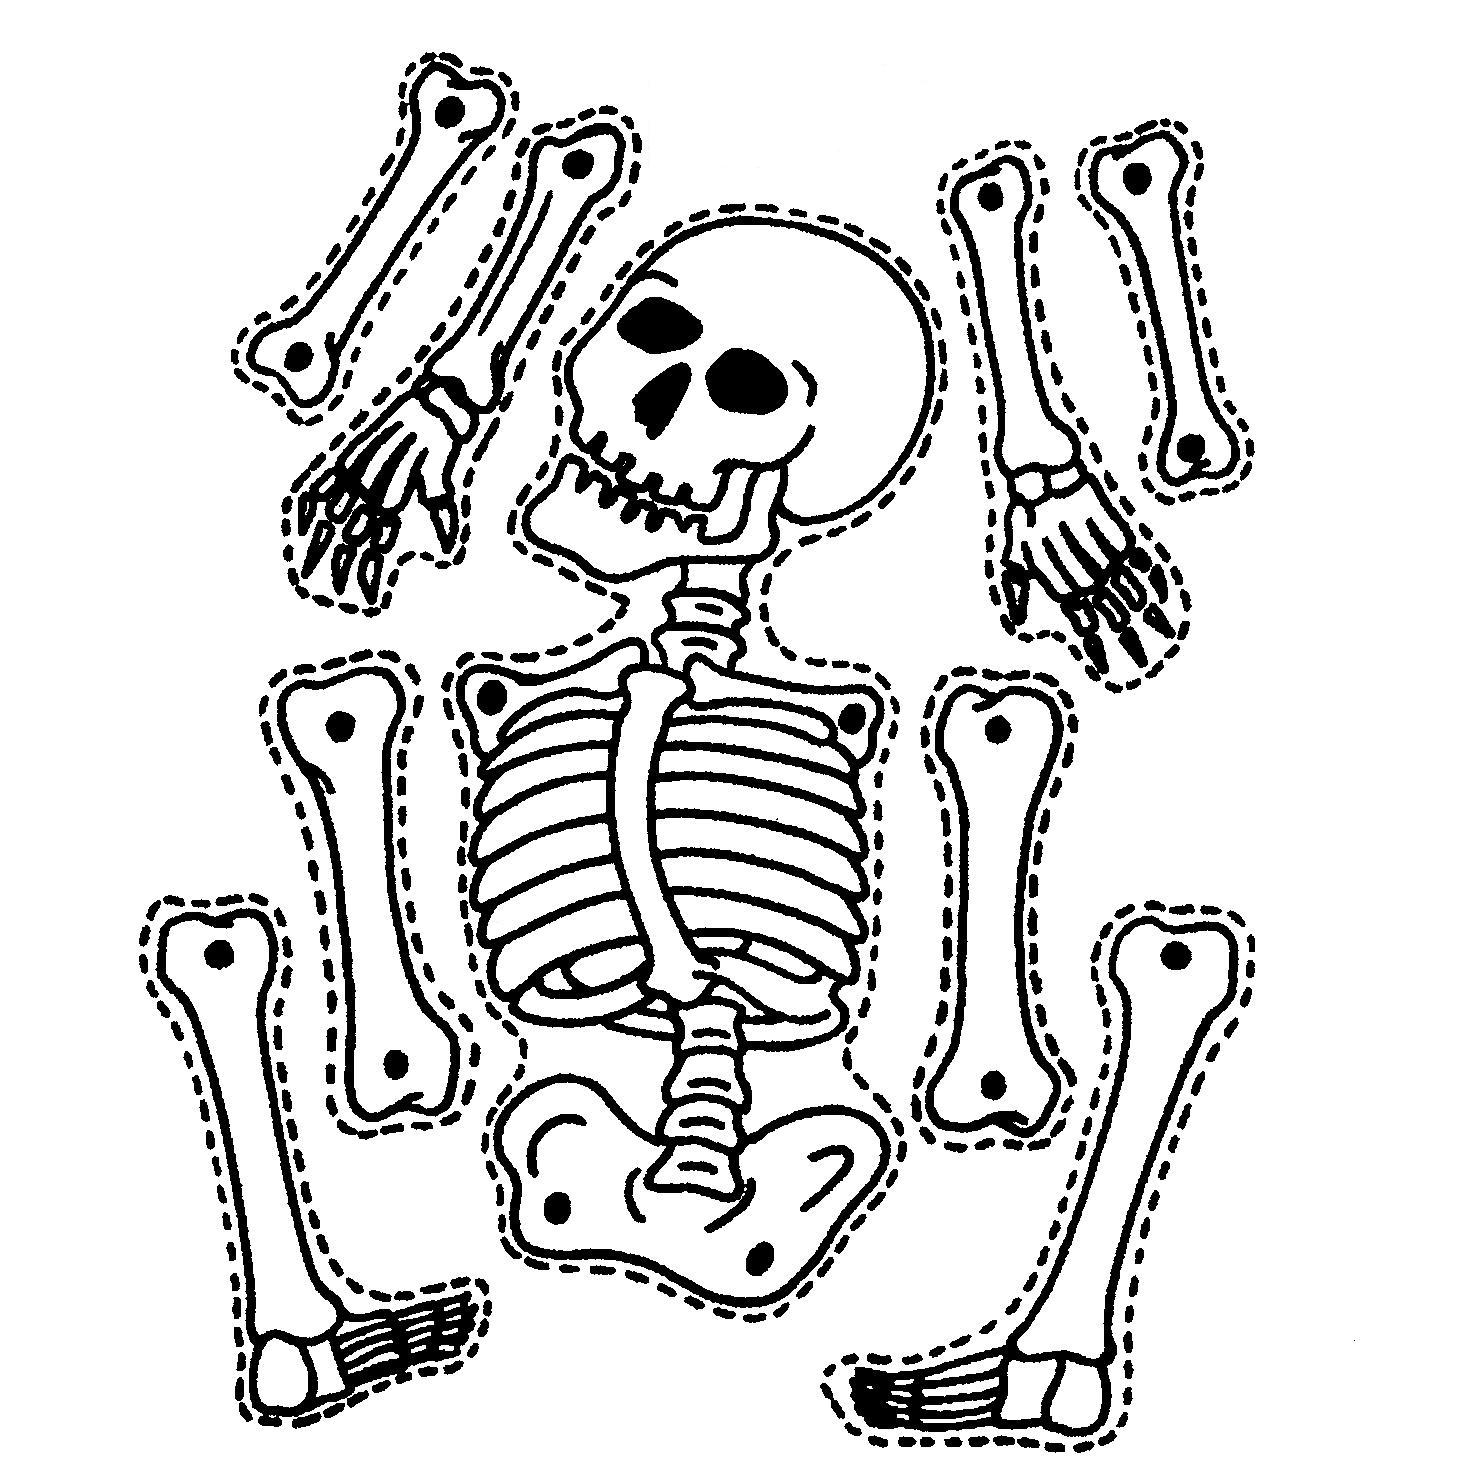 Lively image intended for printable skeleton template